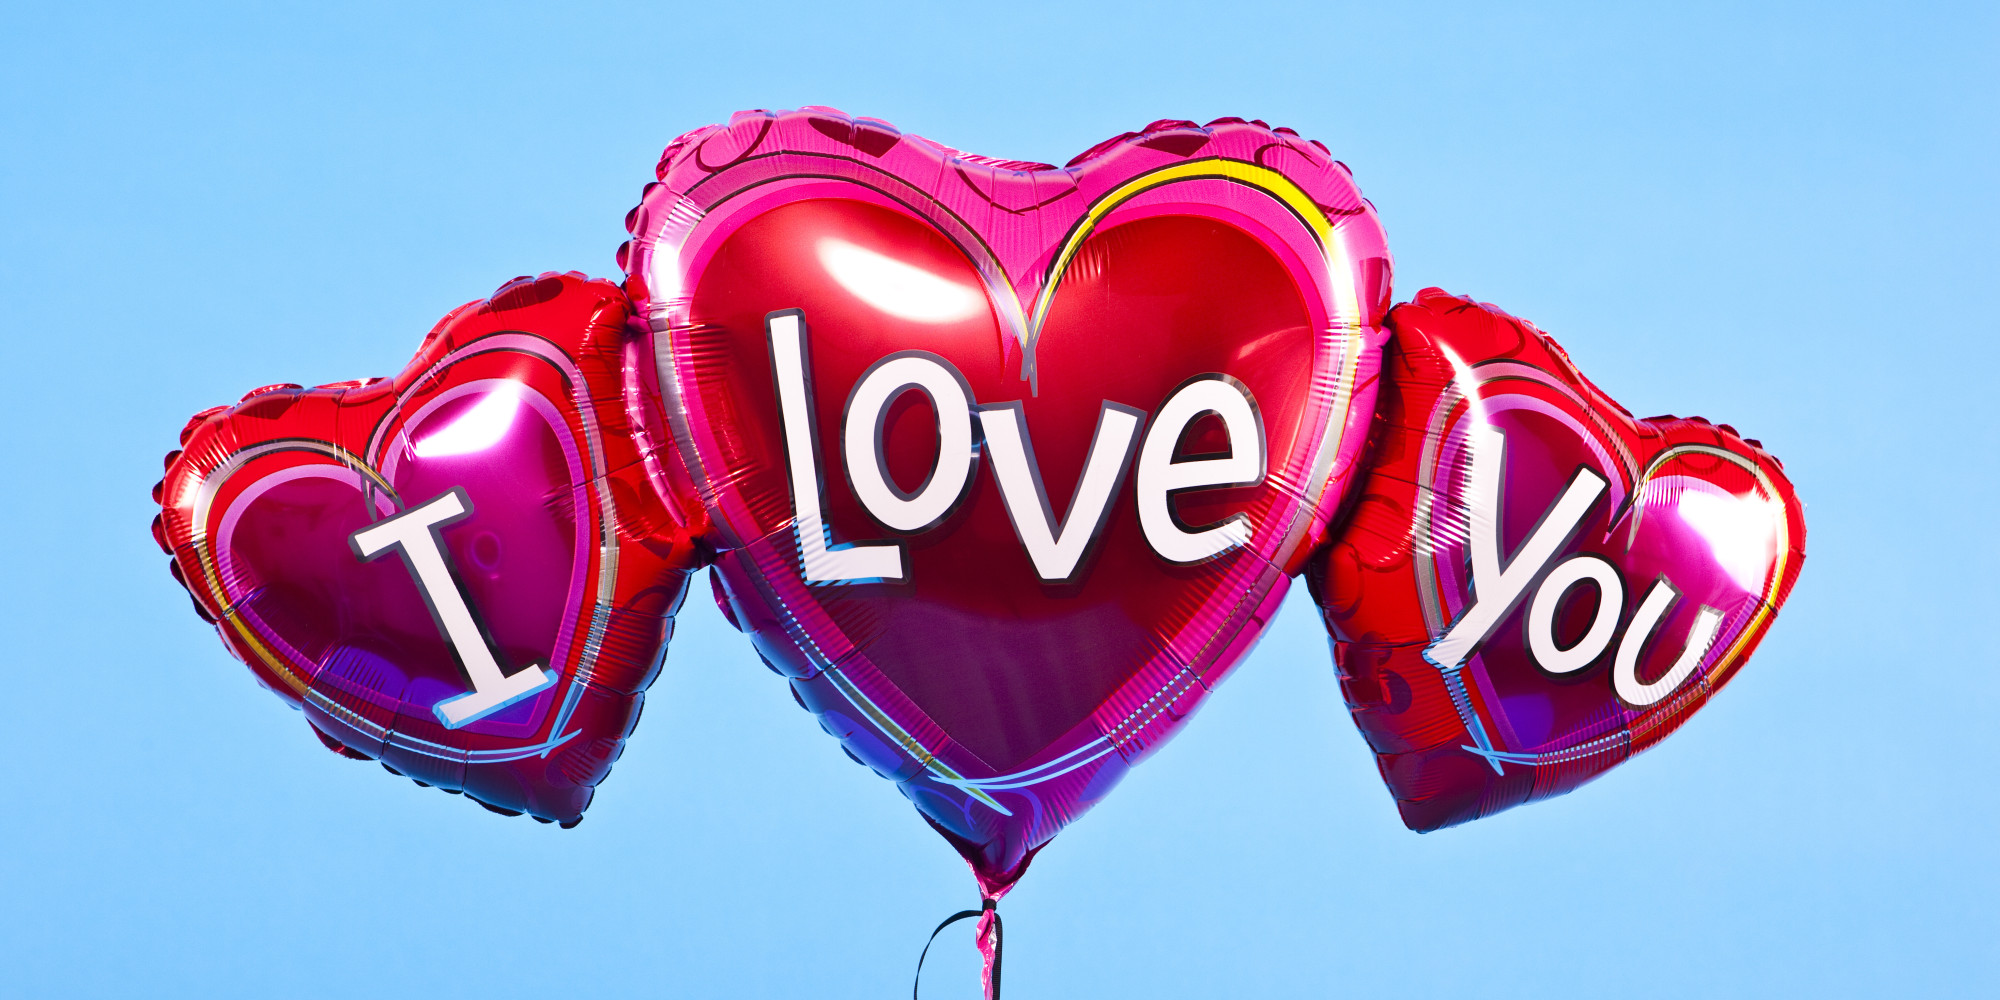 Hd wallpaper i love you - 26 Ways The World Says I Love You In Just 1 Minute Video